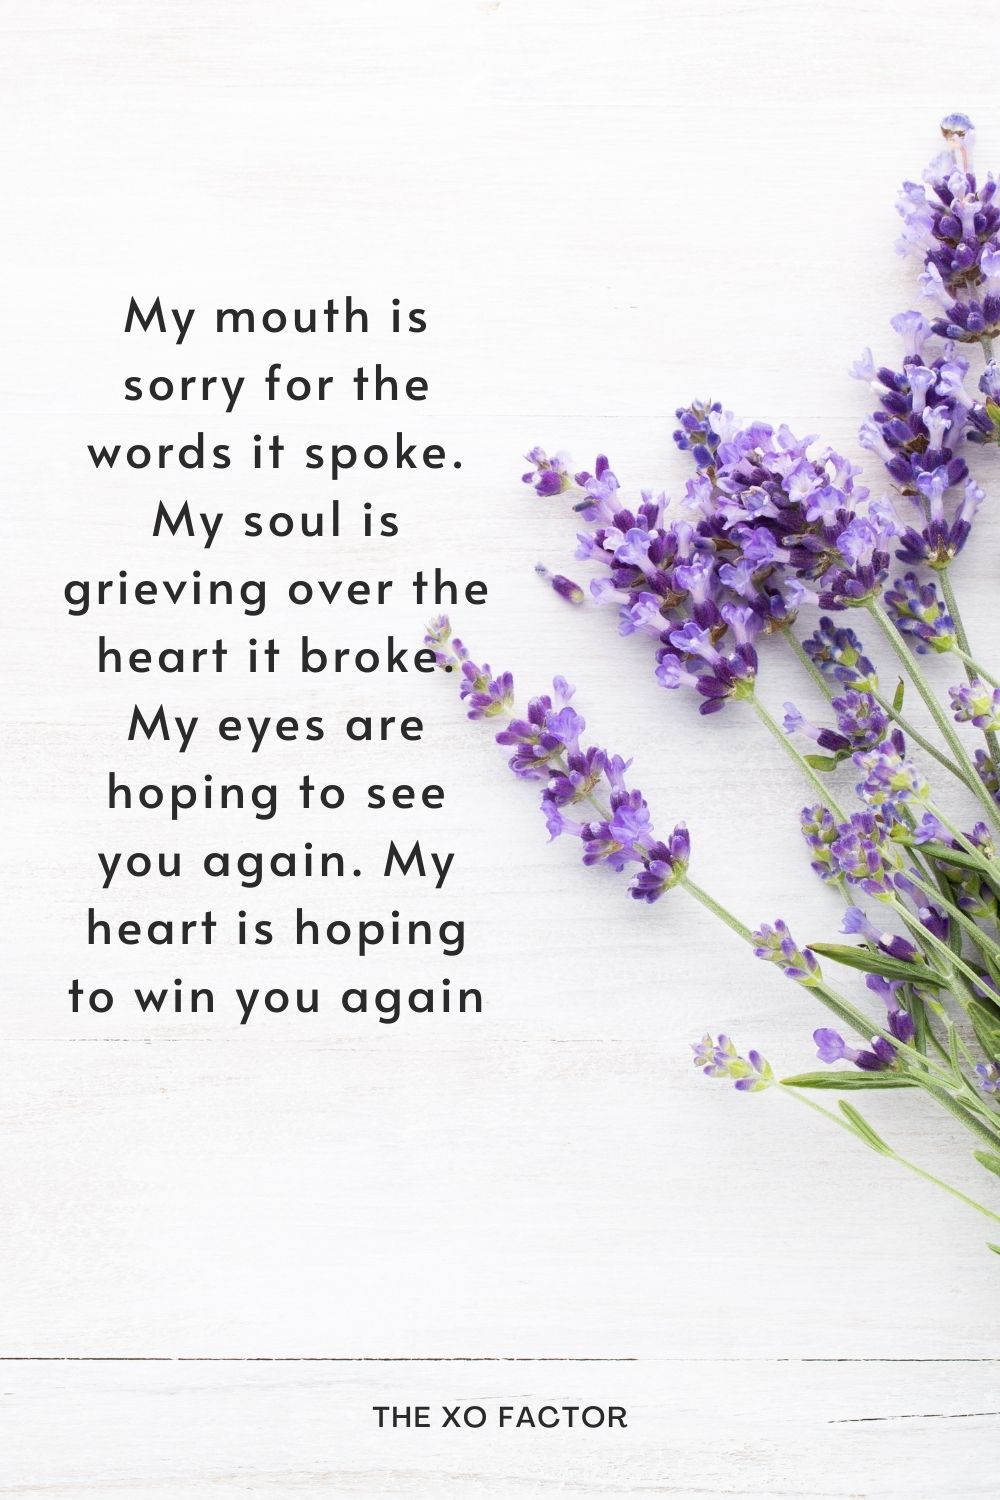 My mouth is sorry for the words it spoke. My soul is grieving over the heart it broke. My eyes are hoping to see you again. My heart is hoping to win you again